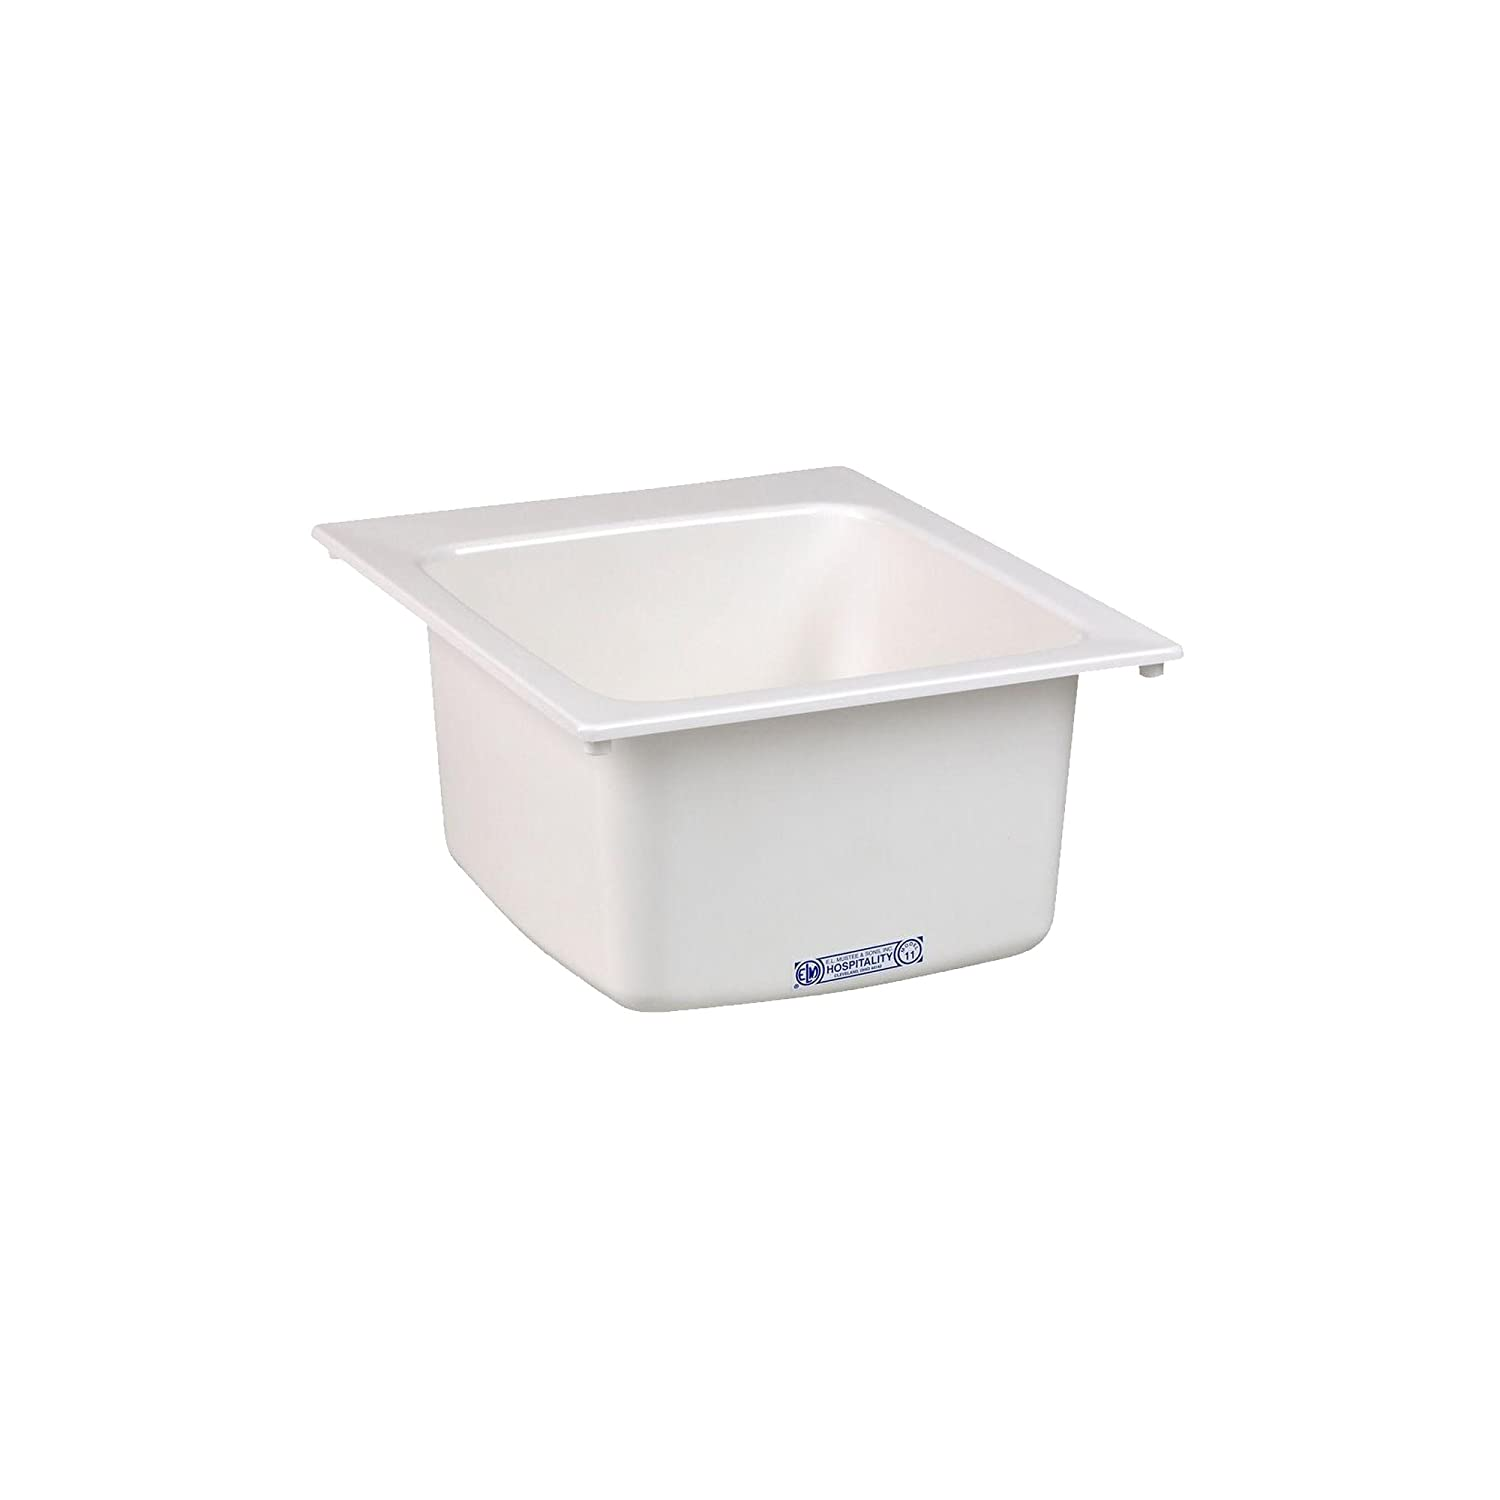 Mustee 11 Utility Sink, 17-Inch x 20-Inch, White